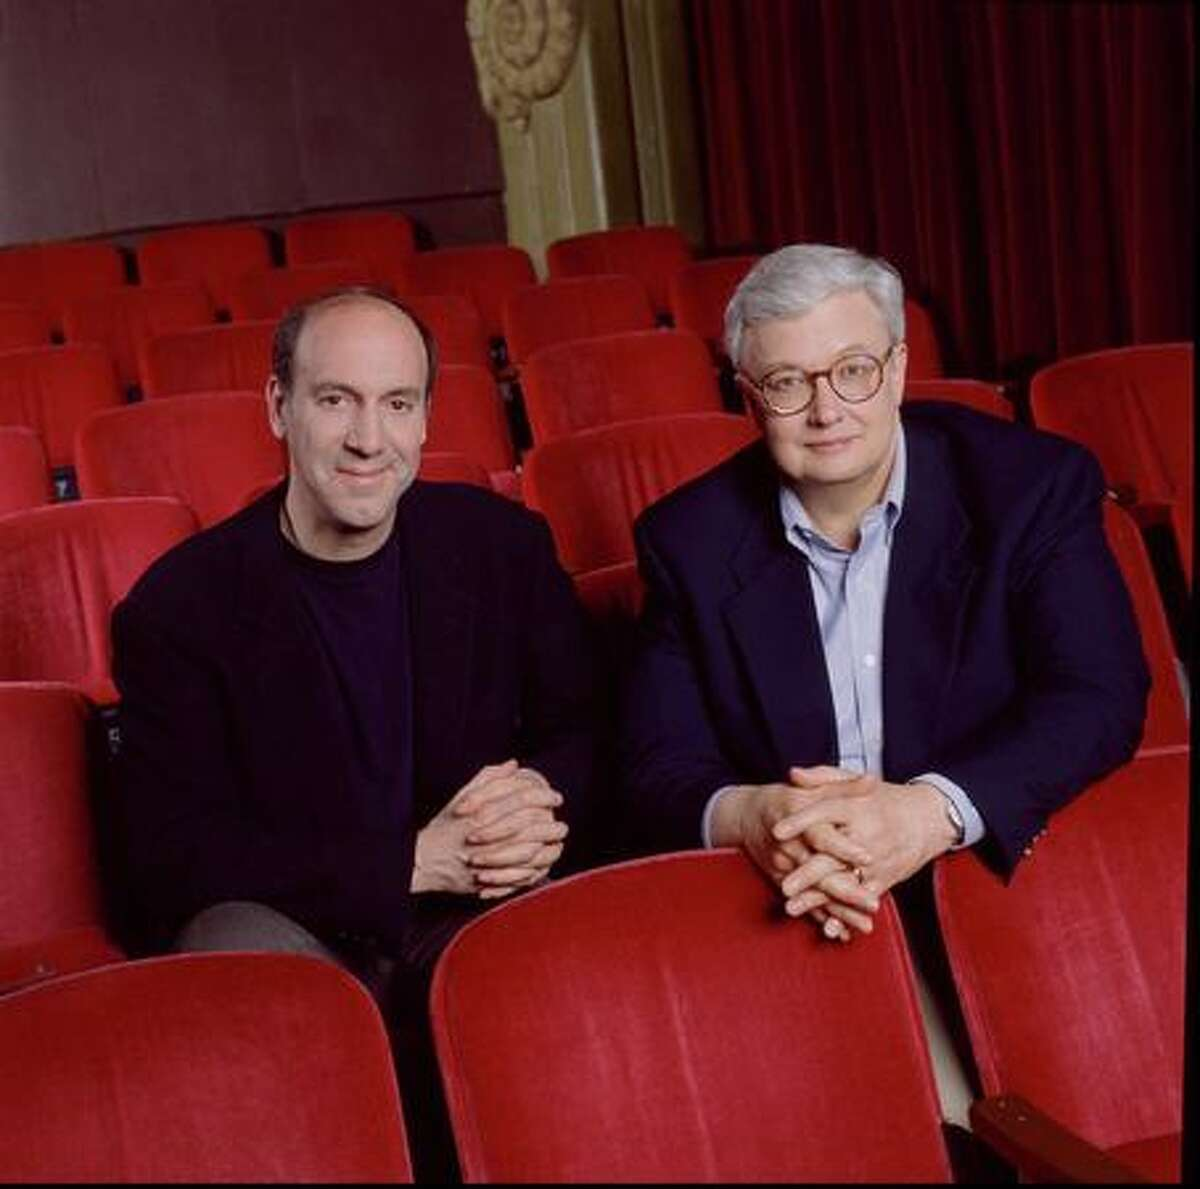 Film critics Roger Ebert (right) and the late Gene Siskel in a promotional photo for one of their TV shows taken in 1996.